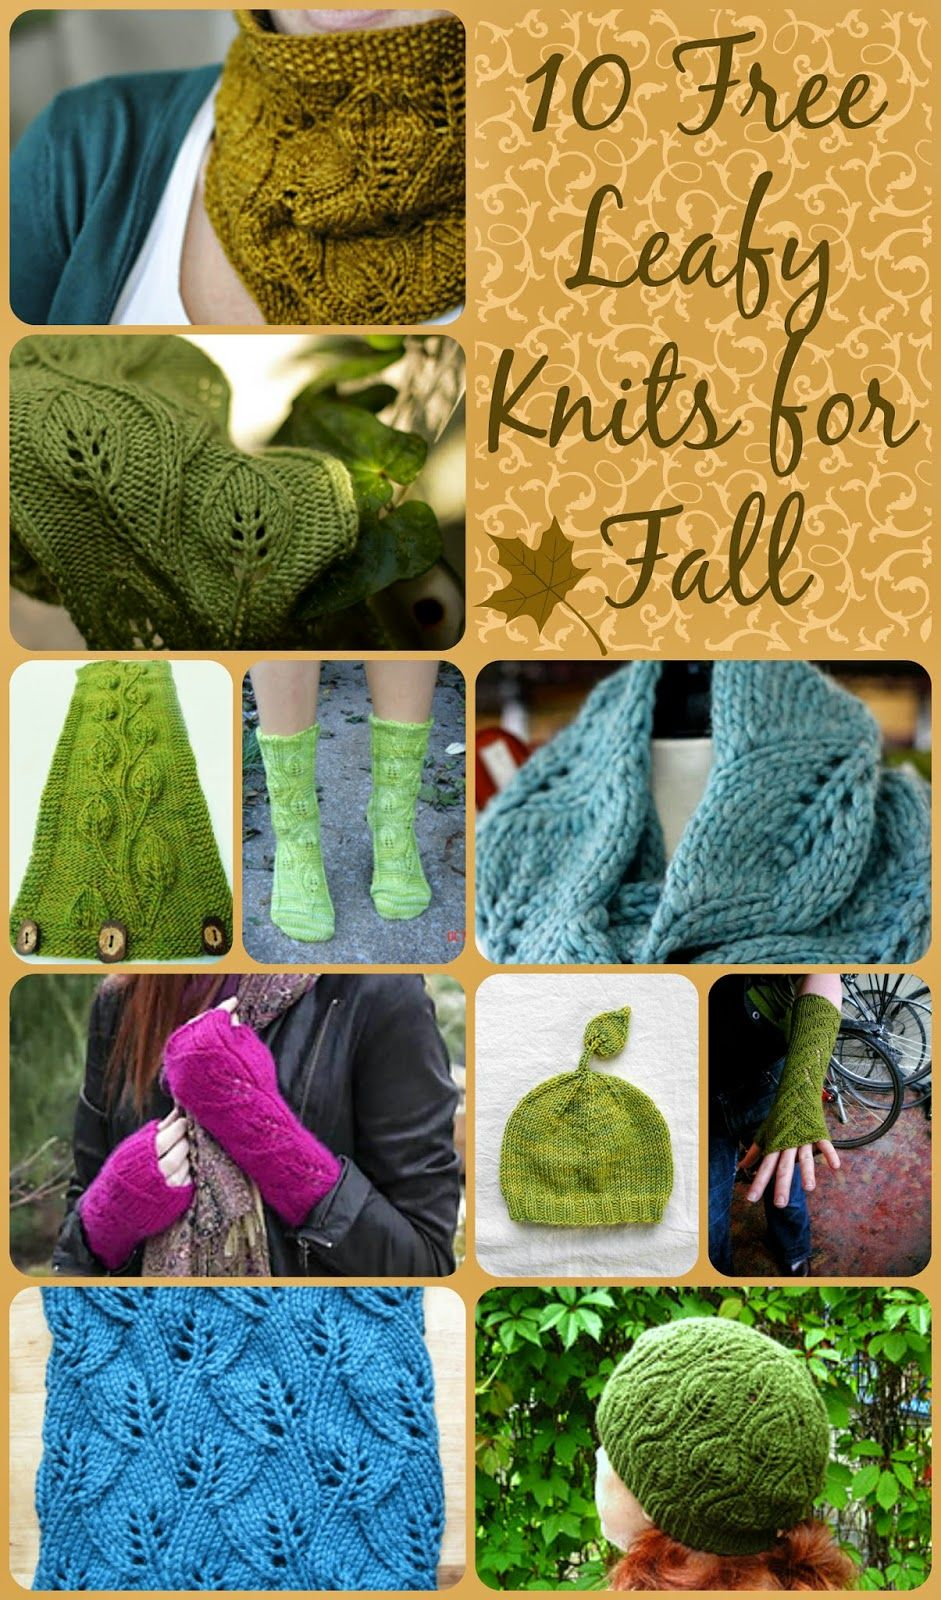 10 free leafy knits for fall free knit patterns hats cowls 10 free leafy knits for fall free knit patterns hats cowls scarves bankloansurffo Images